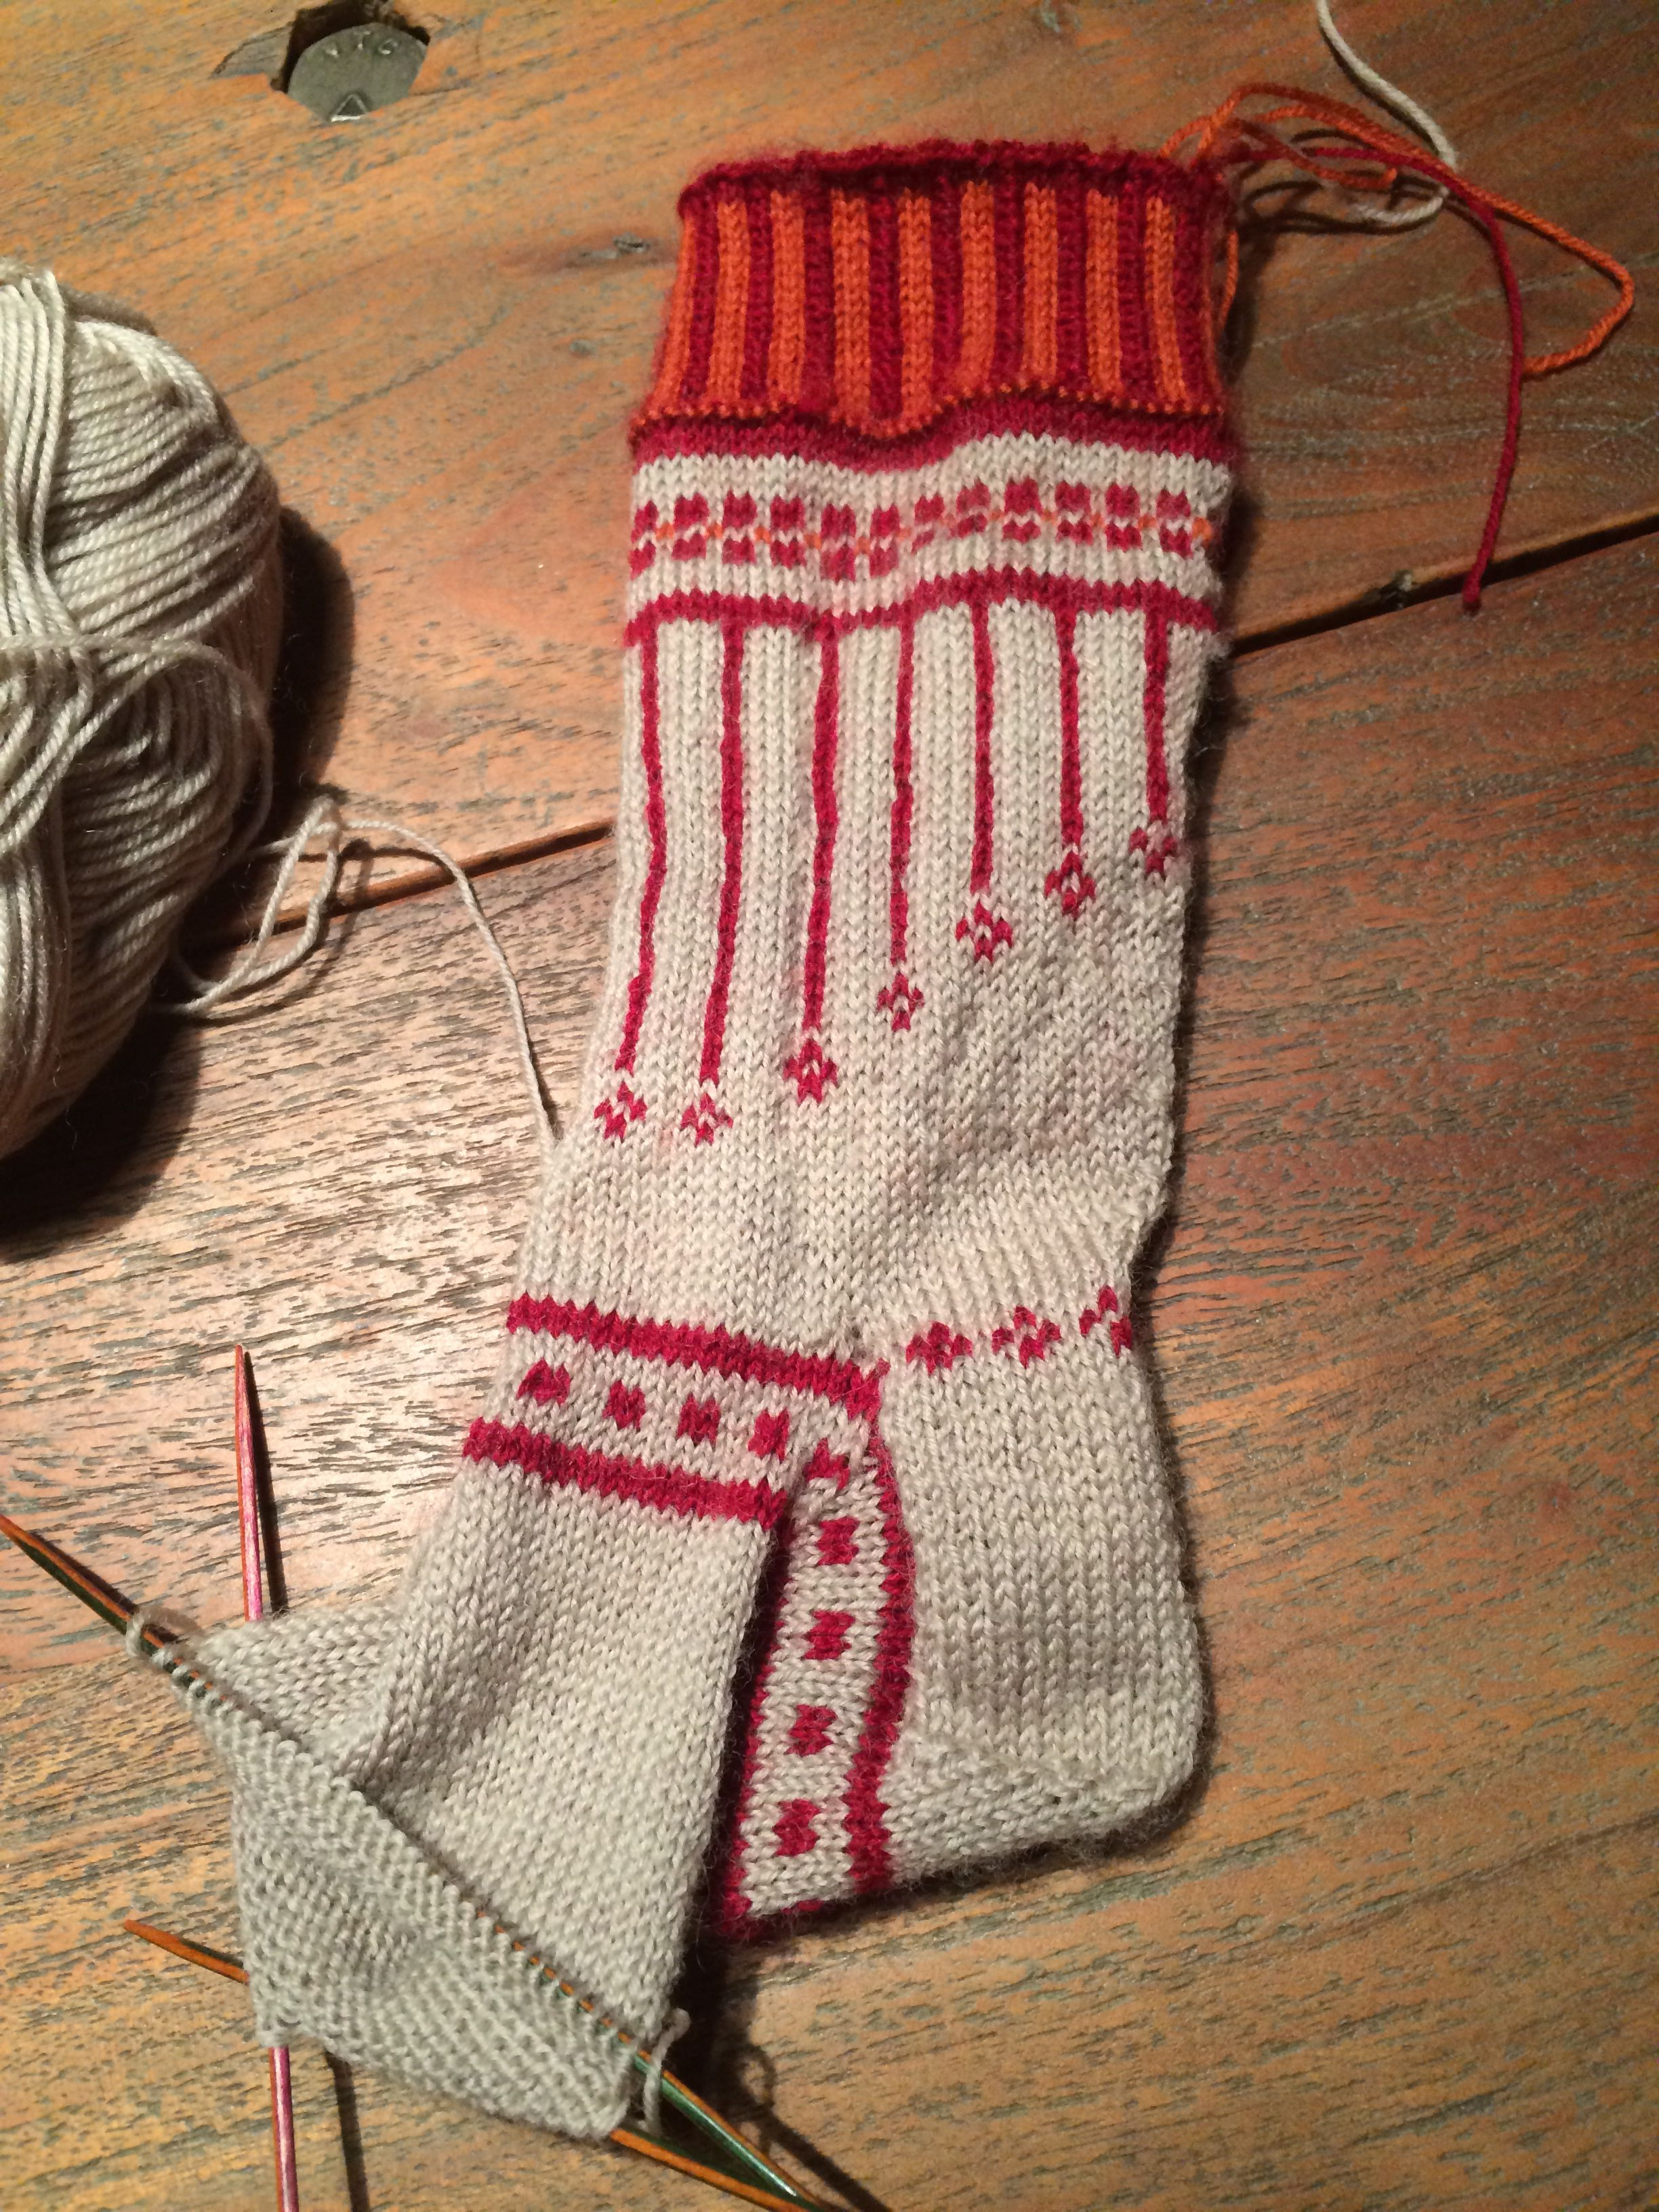 Have to undo my experimental sock, forgot to allow extra size to allow for the fair isle not being stretchy enough. Way too small- back to the drawing board.